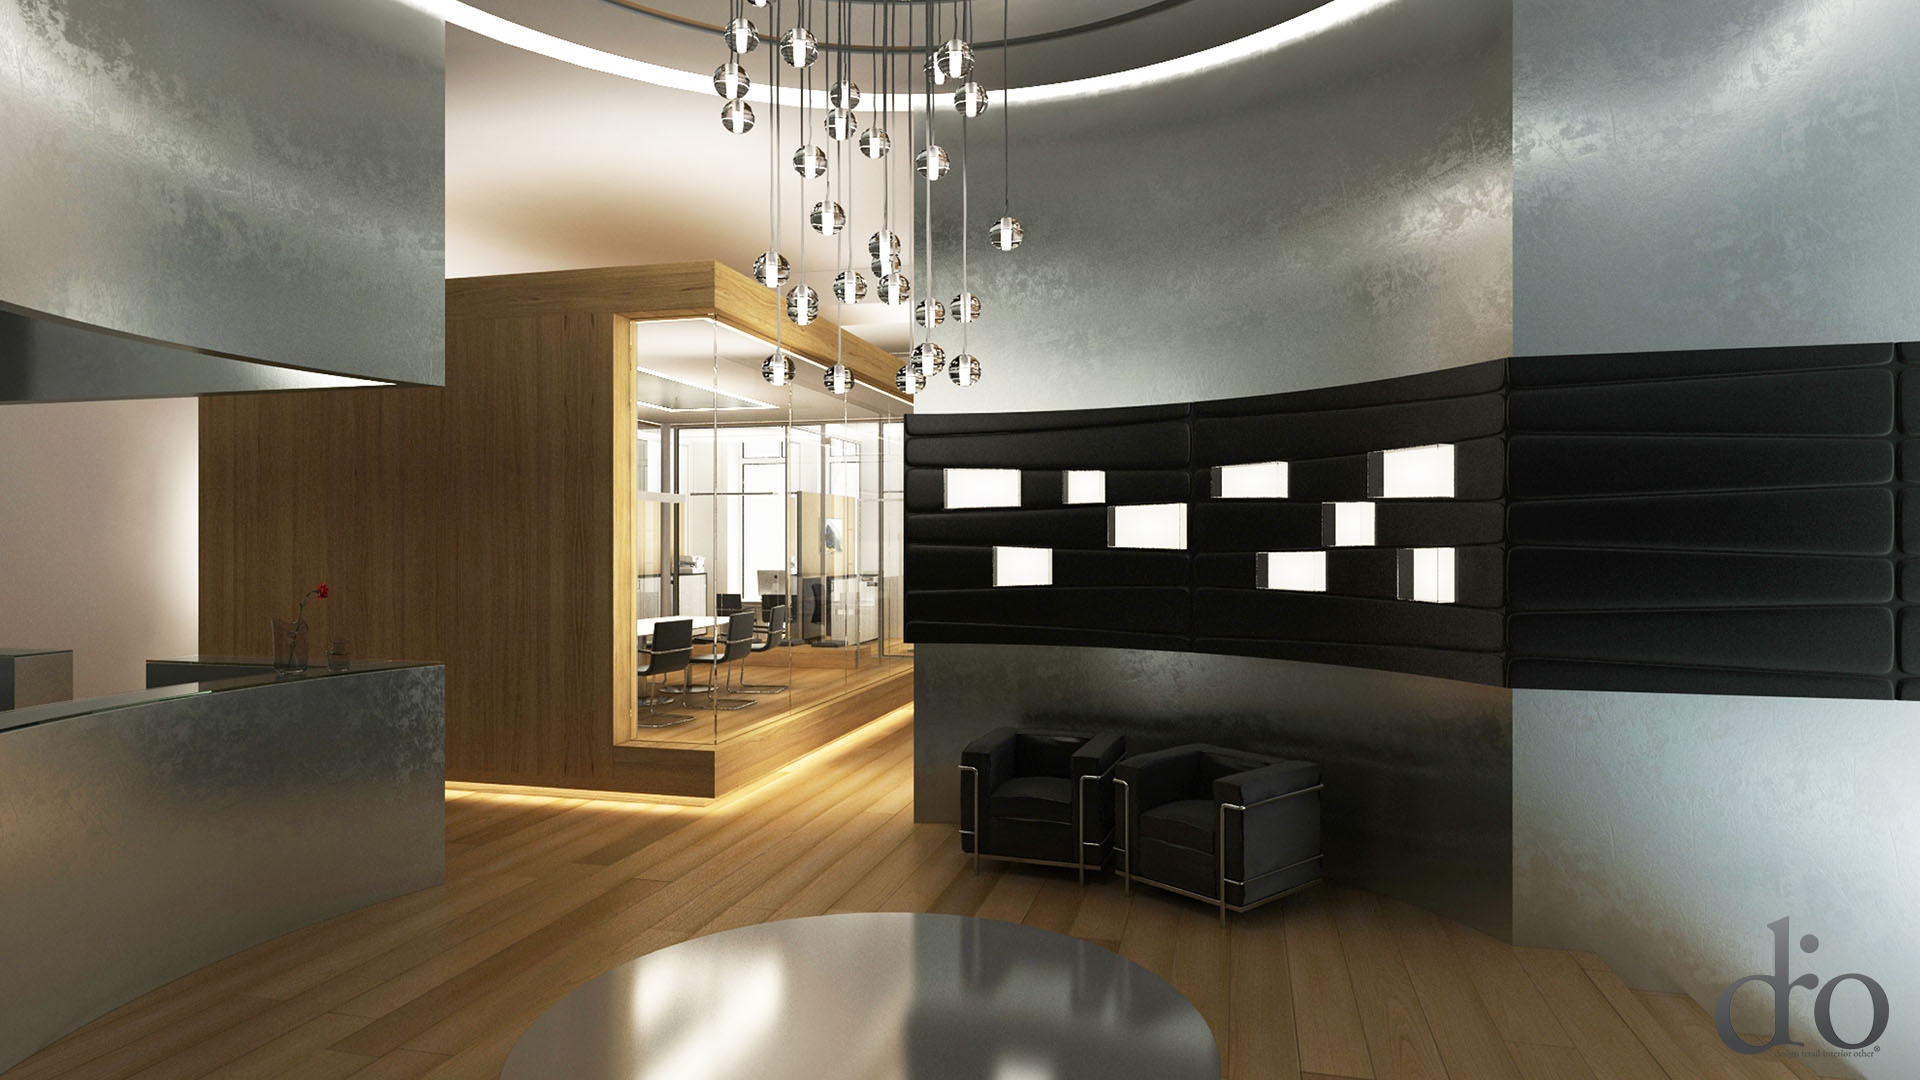 showroom 3d visualization in perfect with us. Black Bedroom Furniture Sets. Home Design Ideas